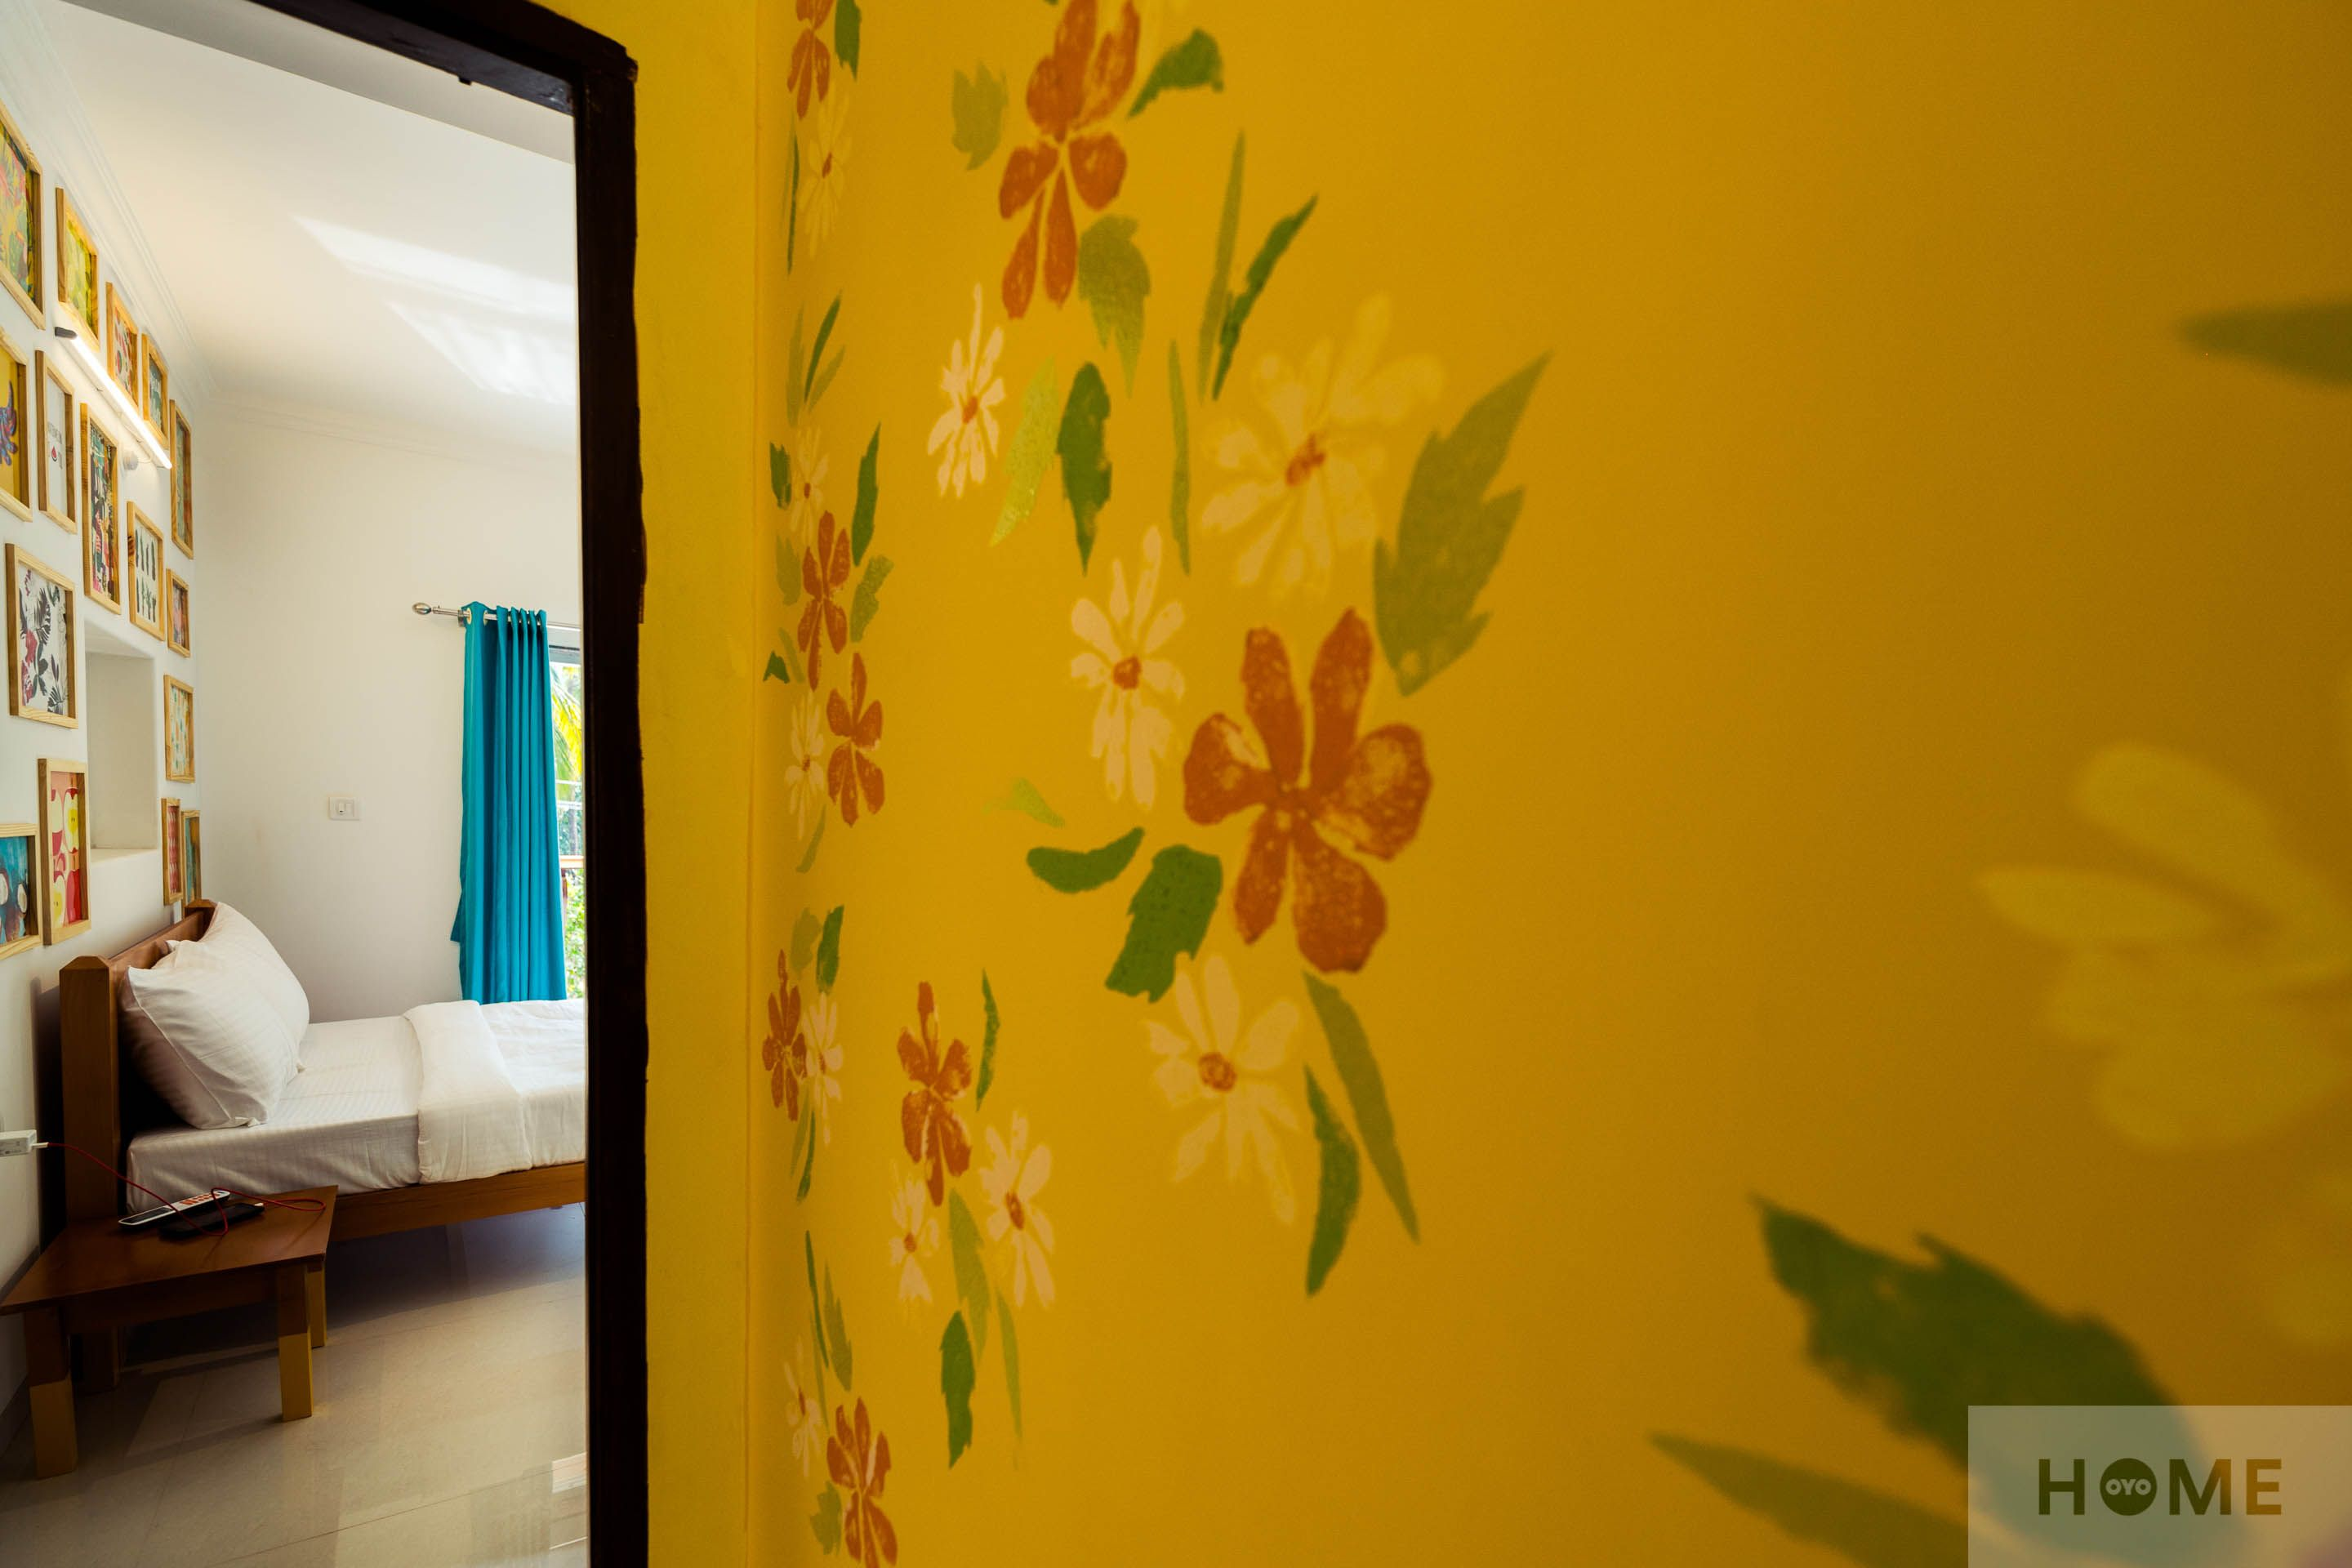 We hand-painted floral designs on the walls in this 2BHK in Goa ...